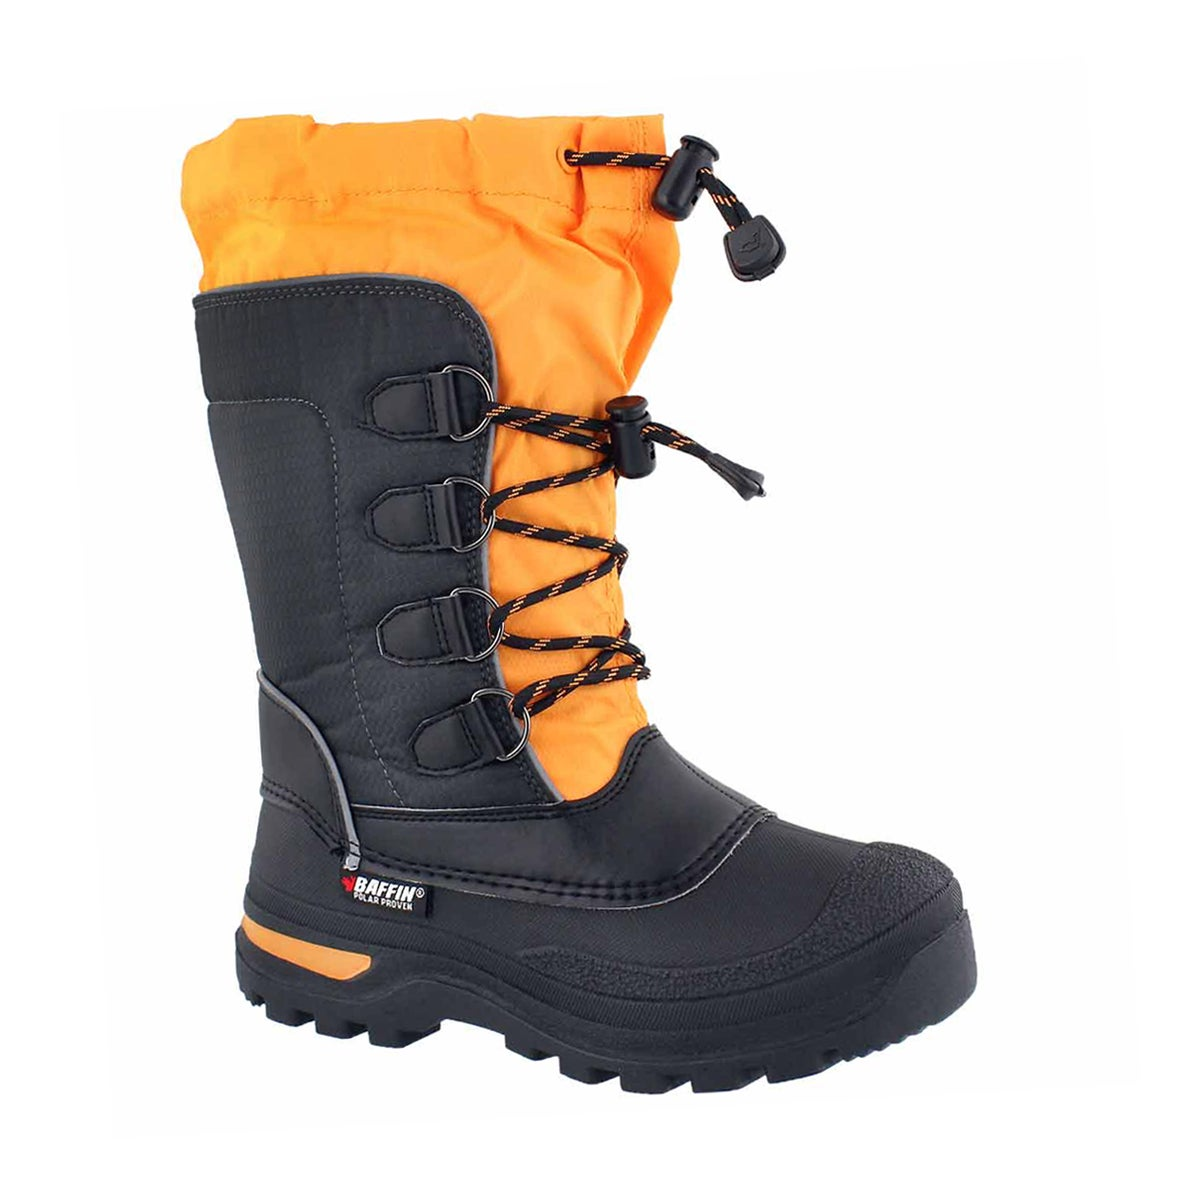 Boys' PINETREE charcoal/orange waterproof boots